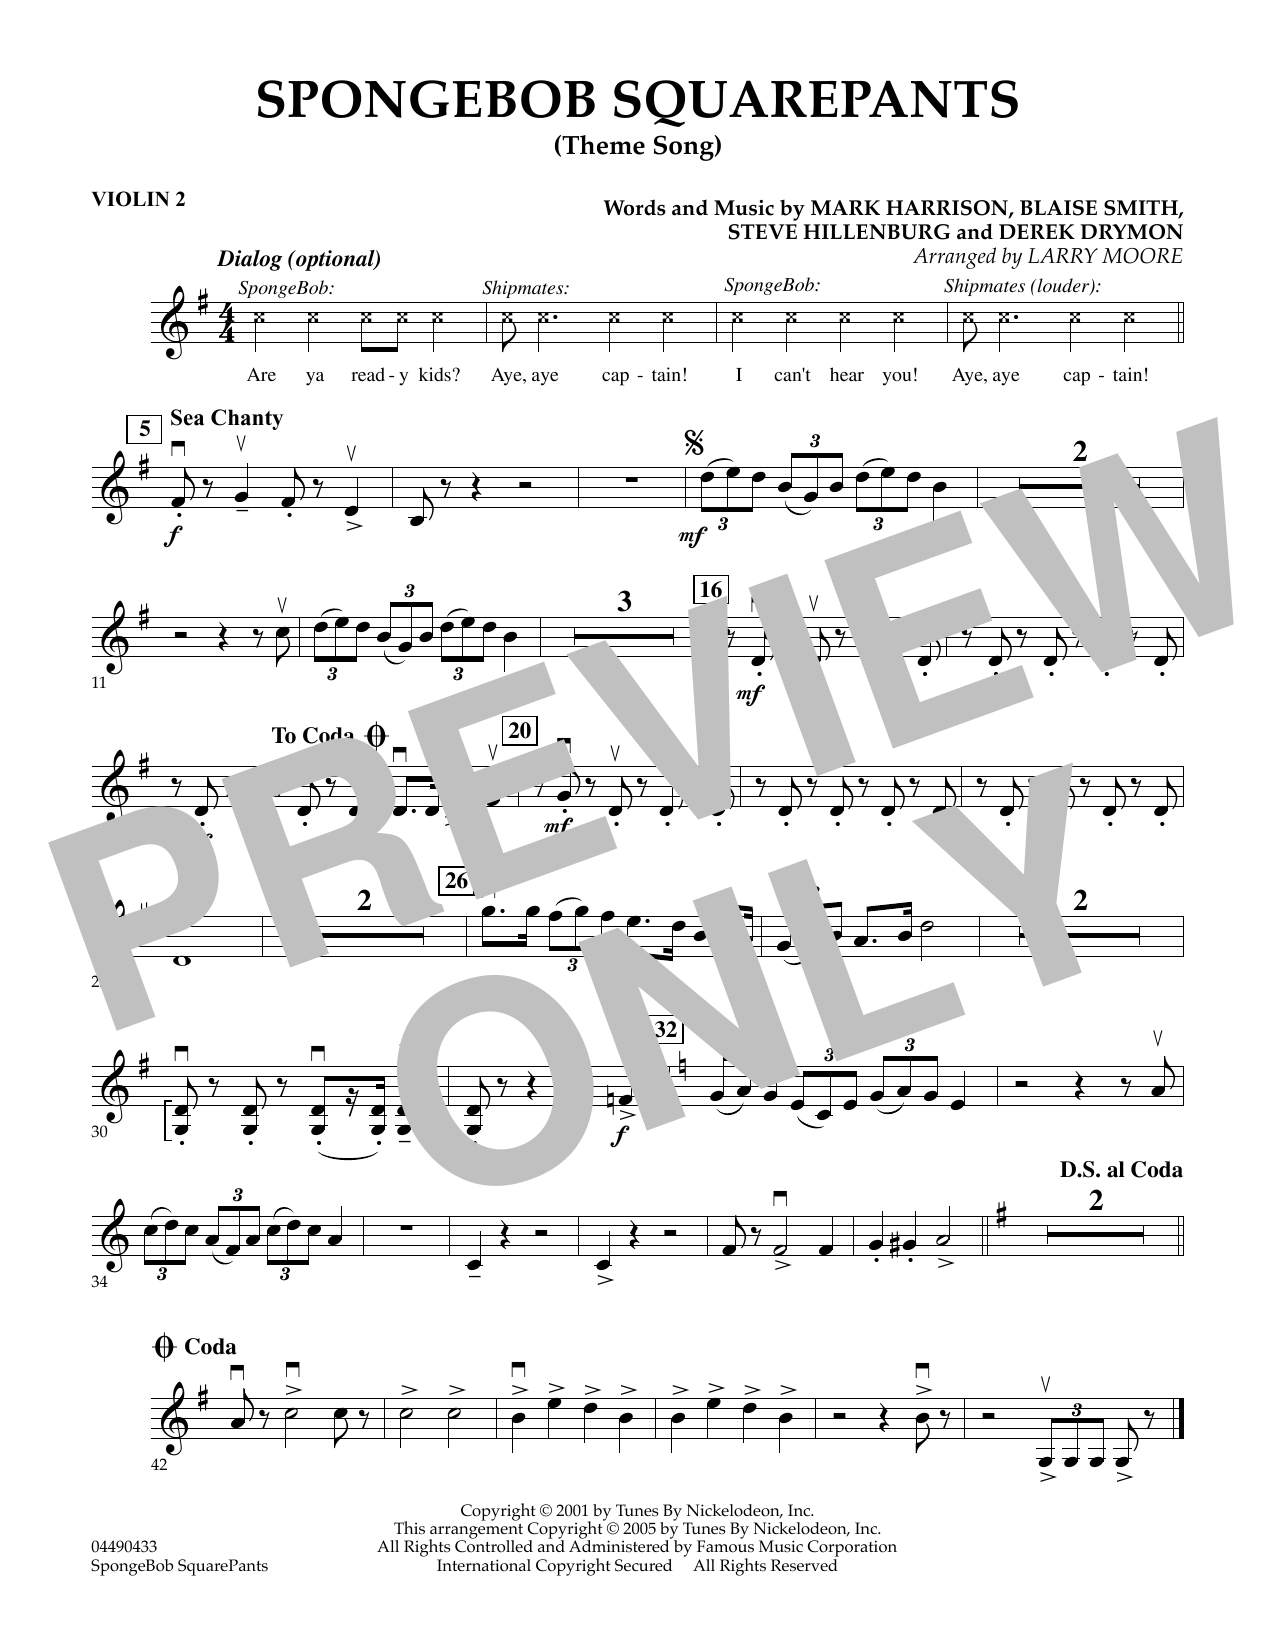 Larry Moore SpongeBob SquarePants (Theme Song) - Violin 2 sheet music preview music notes and score for String Quartet including 1 page(s)